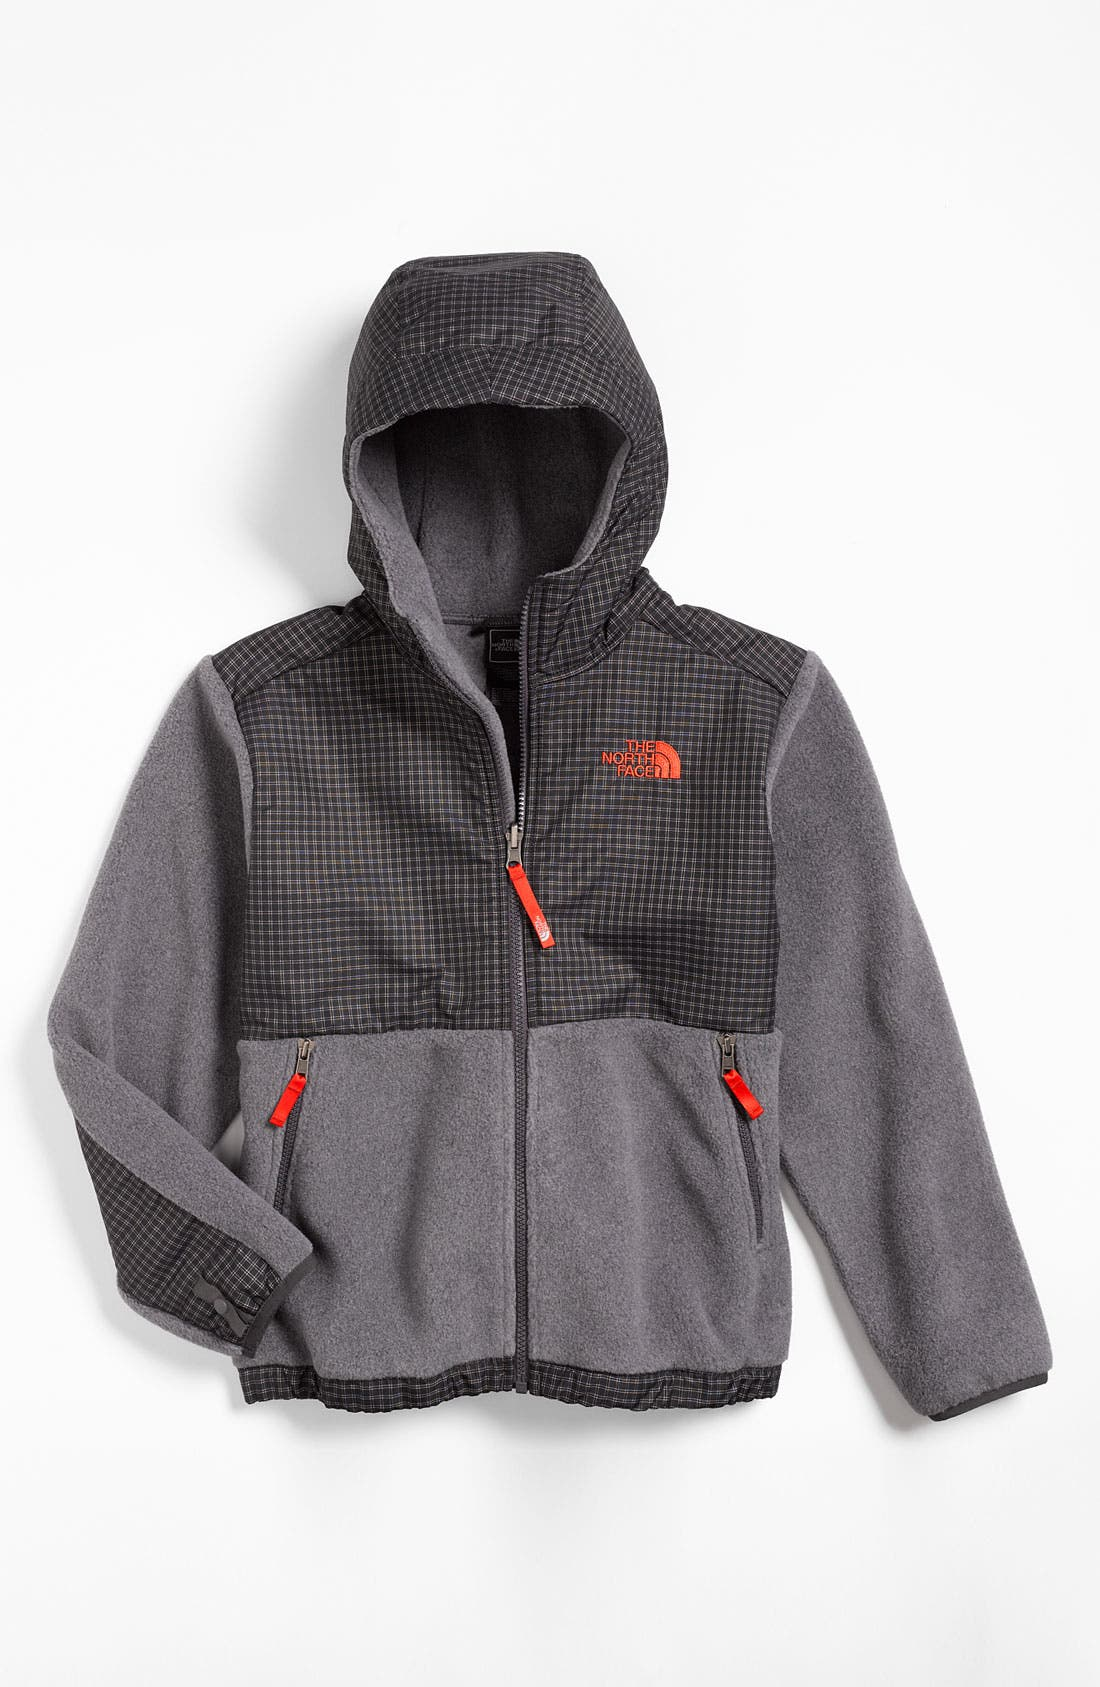 Alternate Image 1 Selected - The North Face 'Denali' Fleece Jacket (Little Boys)